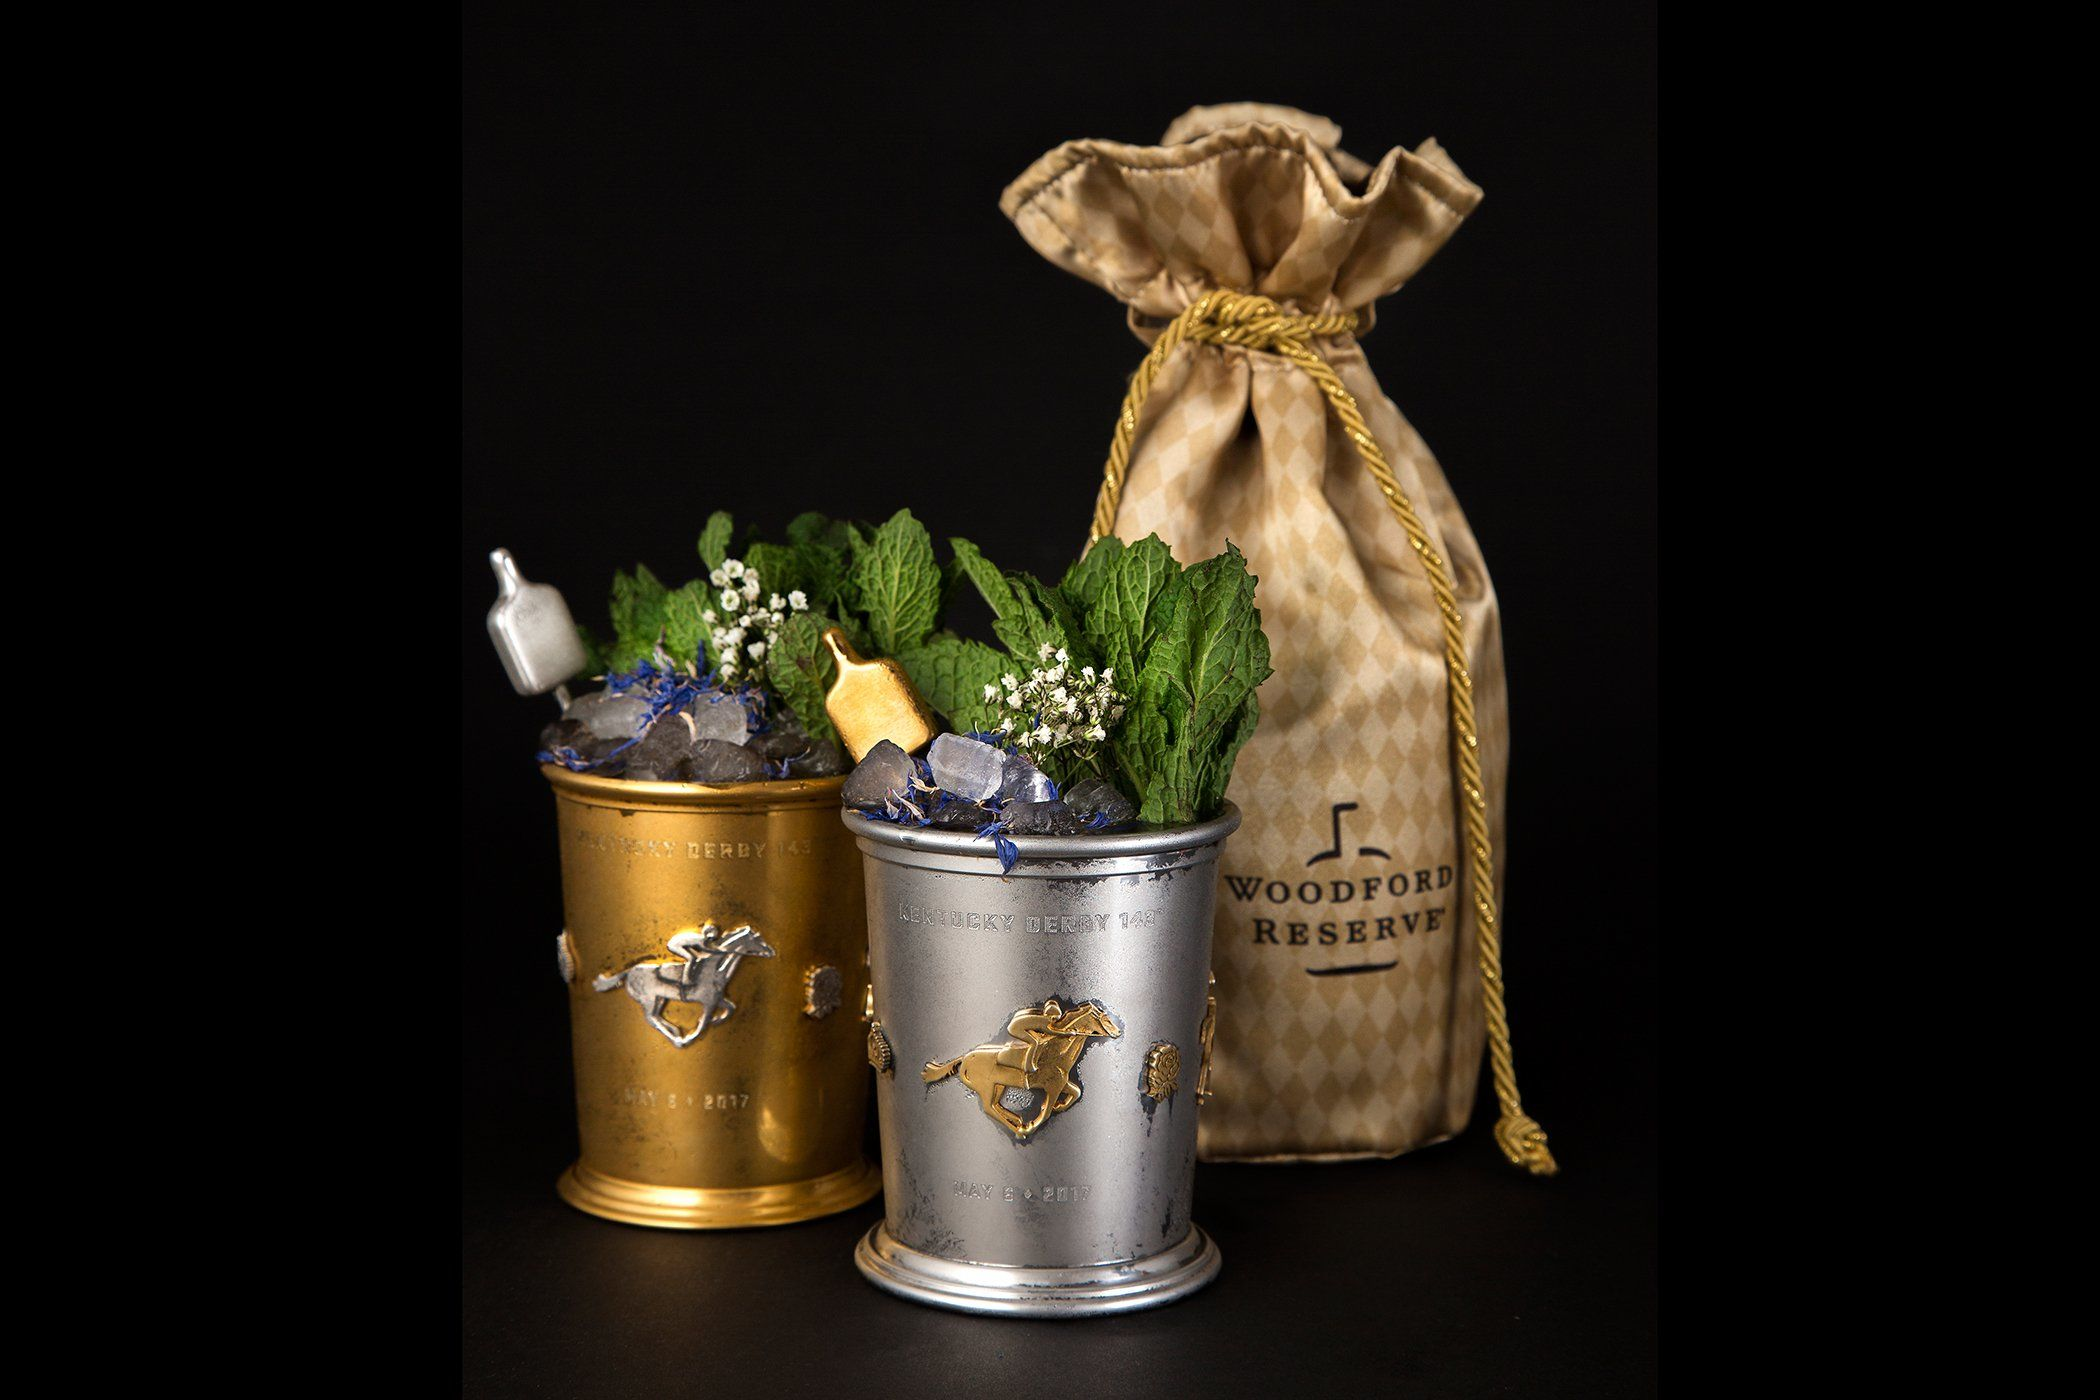 You Can Buy a $2,500 Mint Julep Served in a Gold Cup at This Weekend's Kentucky Derby